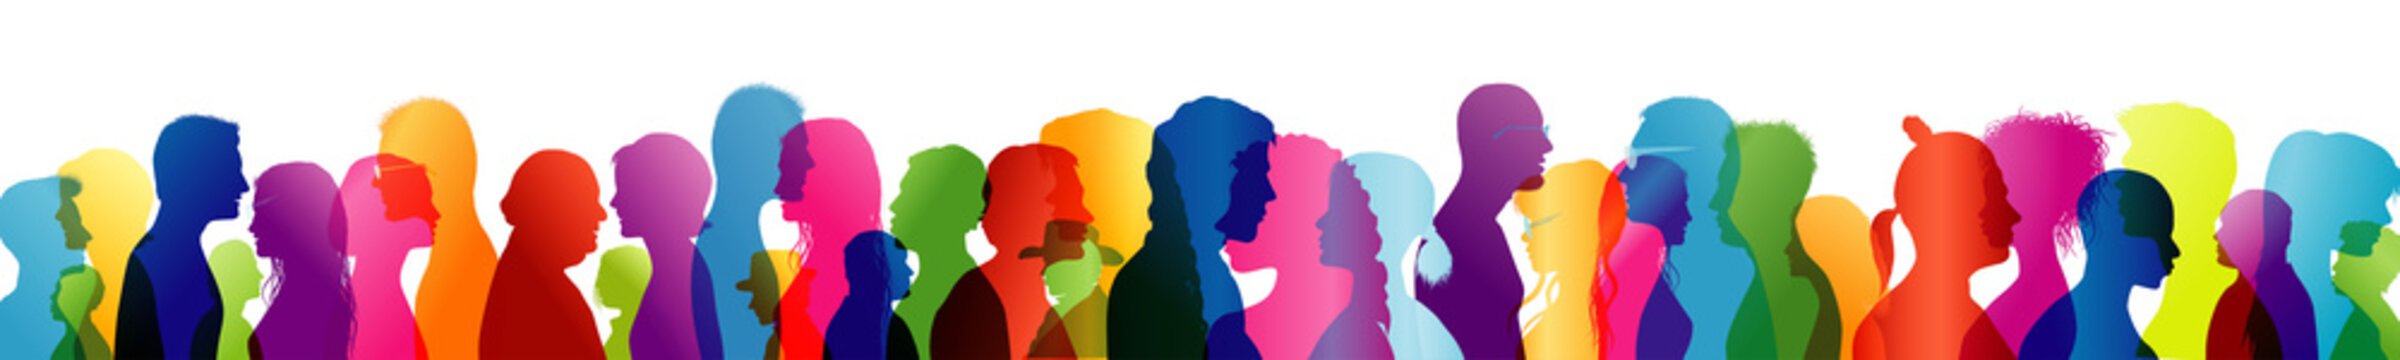 Group of people talking. Crowd talking. To communicate. Speak. Colored silhouette profiles